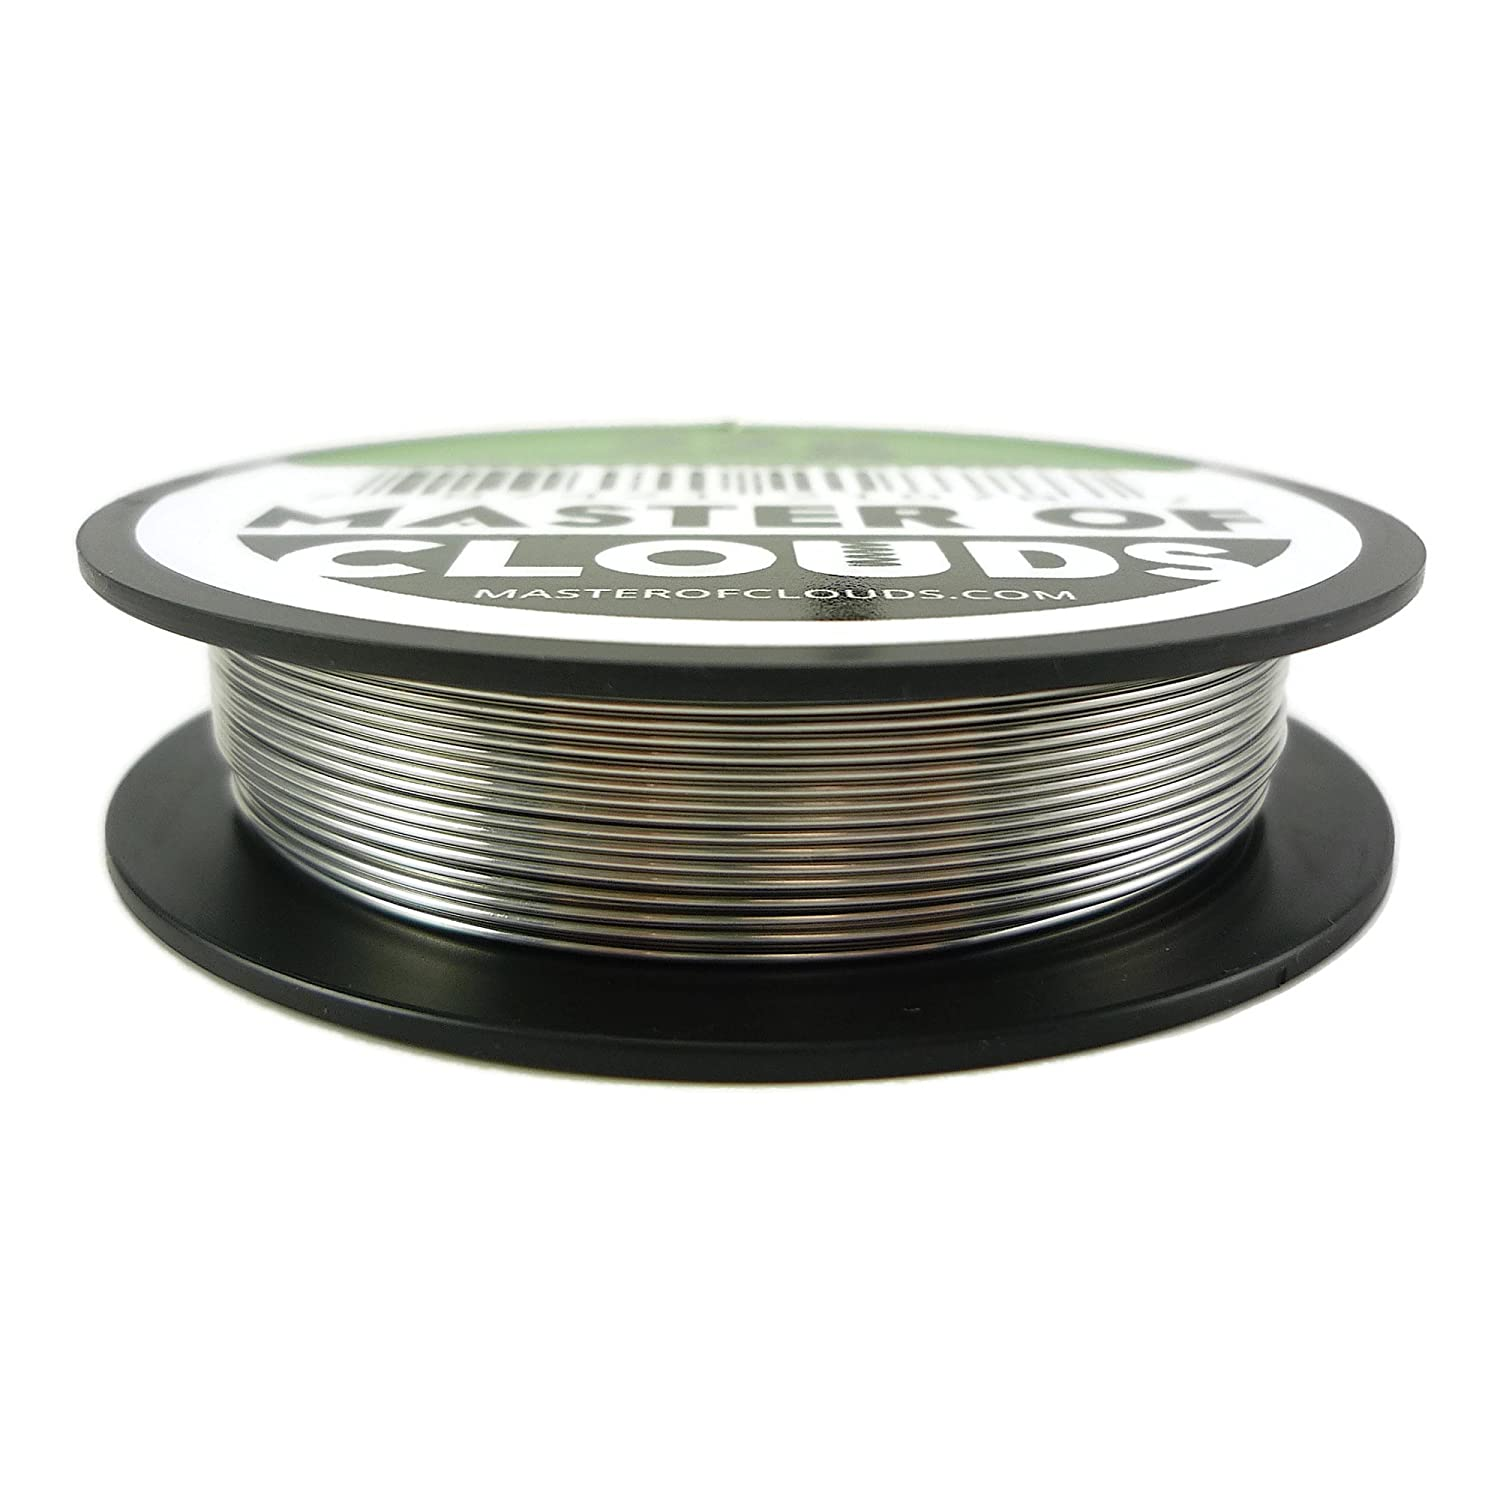 Nichrome Wire Grid Center Keyword Warping Machine Auto Control Energysaver Fromseekic 80 100 Ft 22 Gauge Awg Resistance 0 64mm 22g Rh Amazon Com